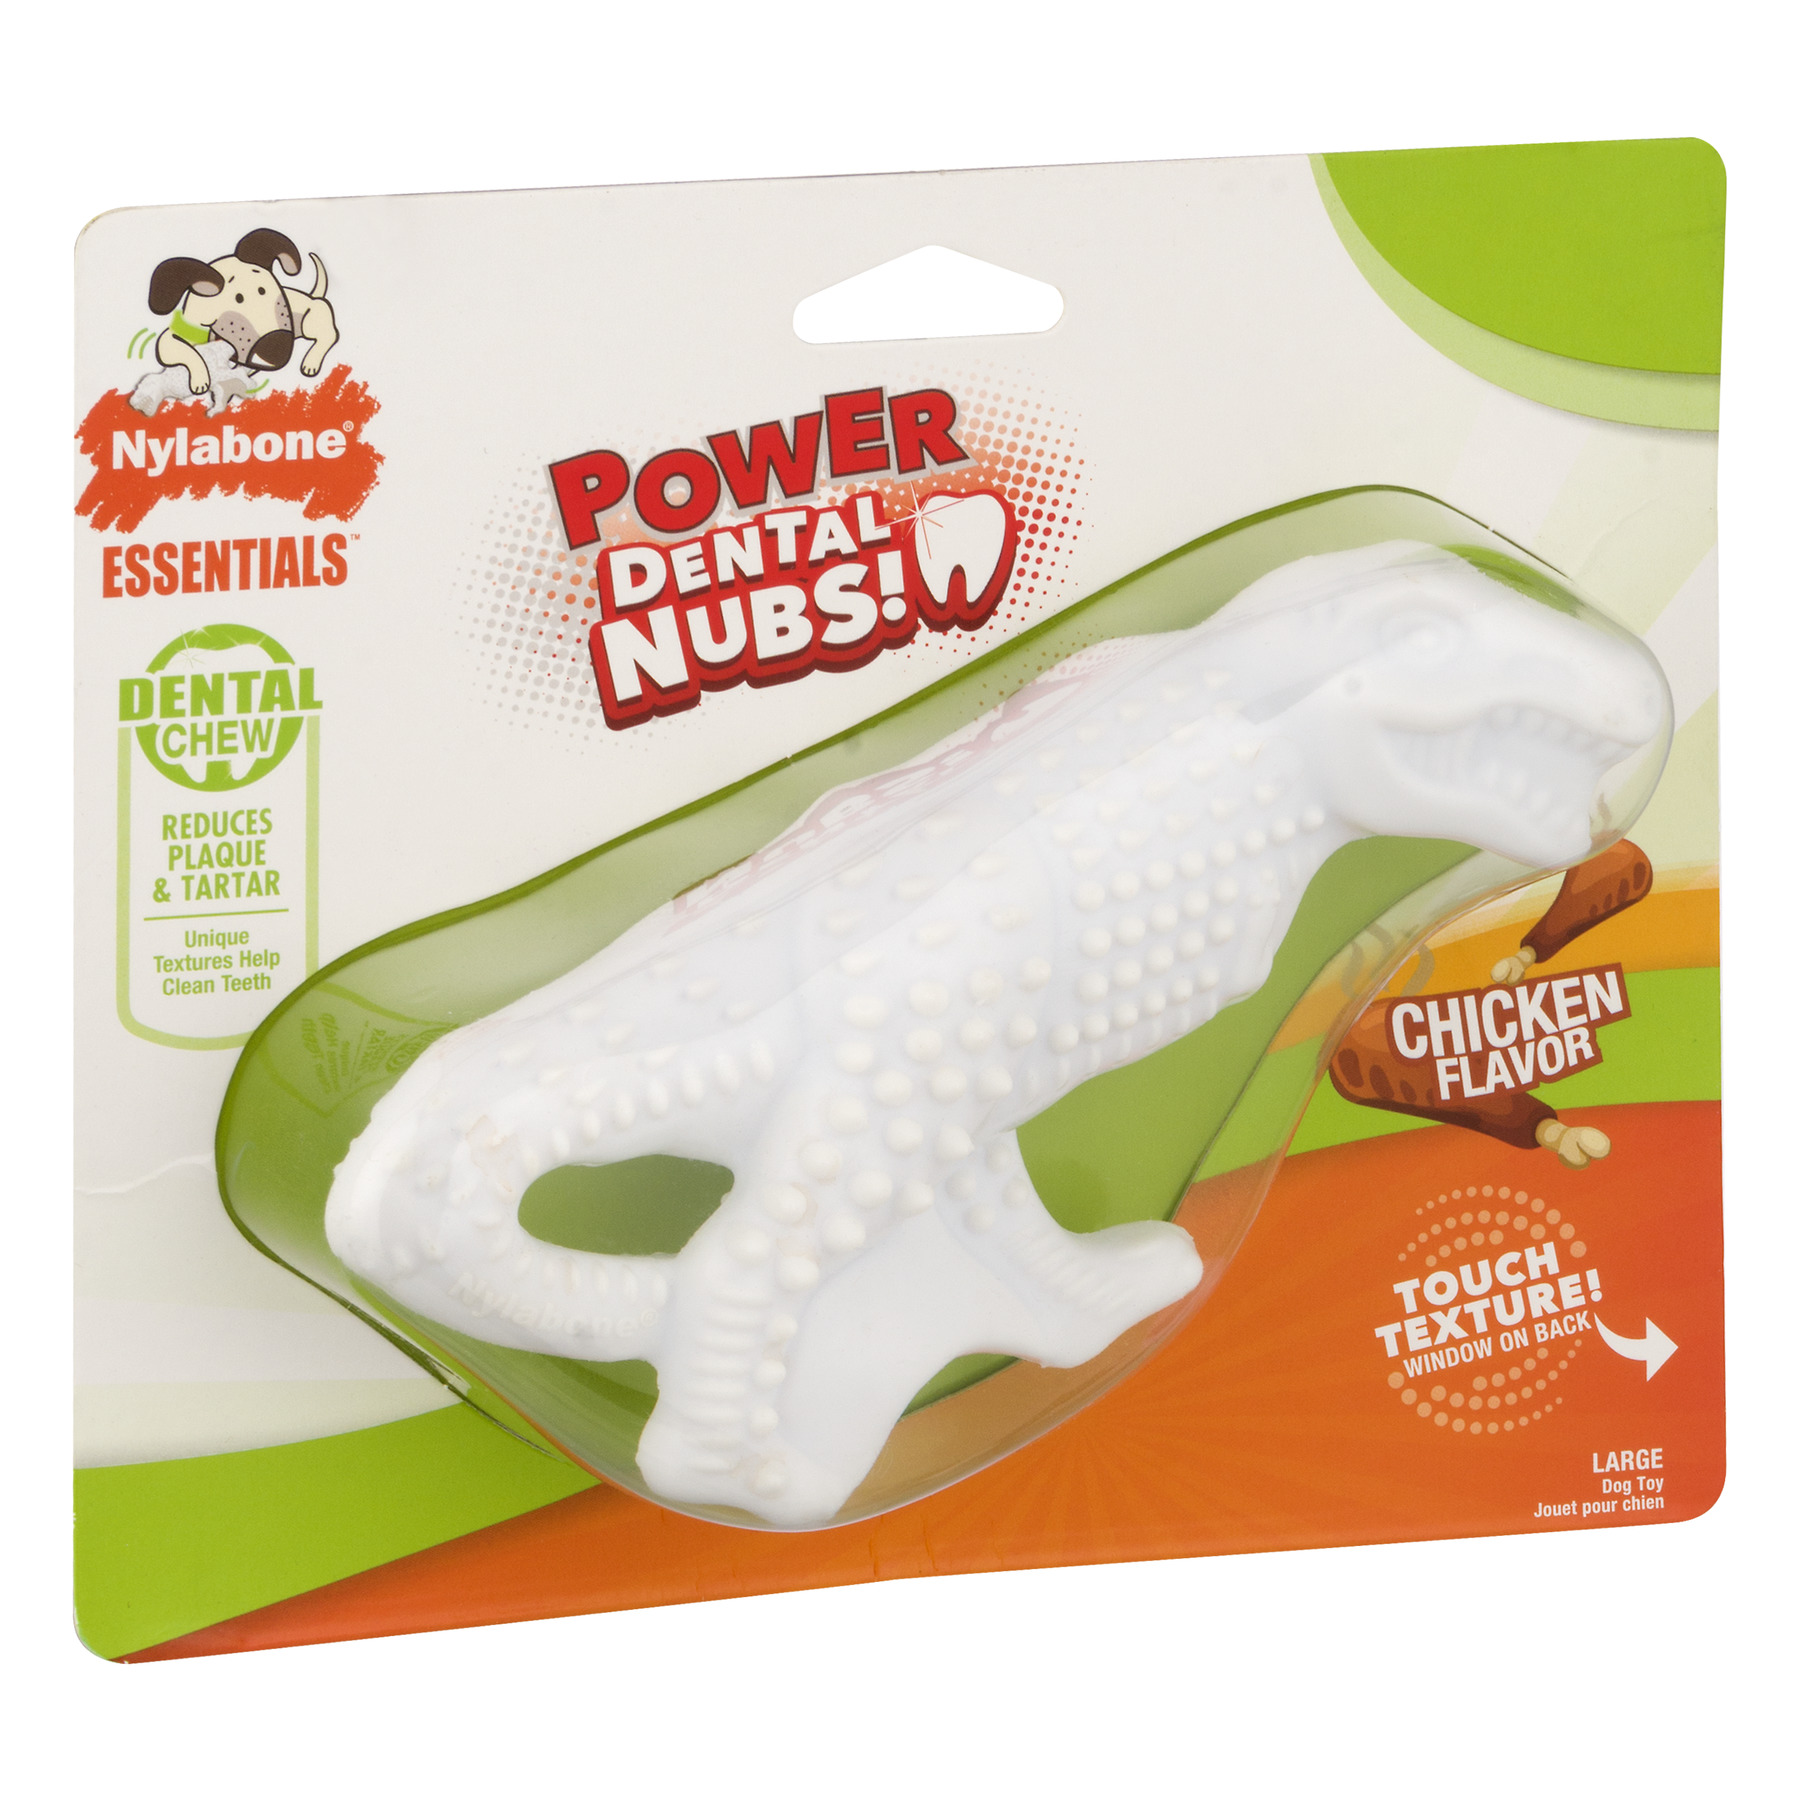 Nylabone Essentials Chicken Flavored Dental Dog Chew Toy, Large